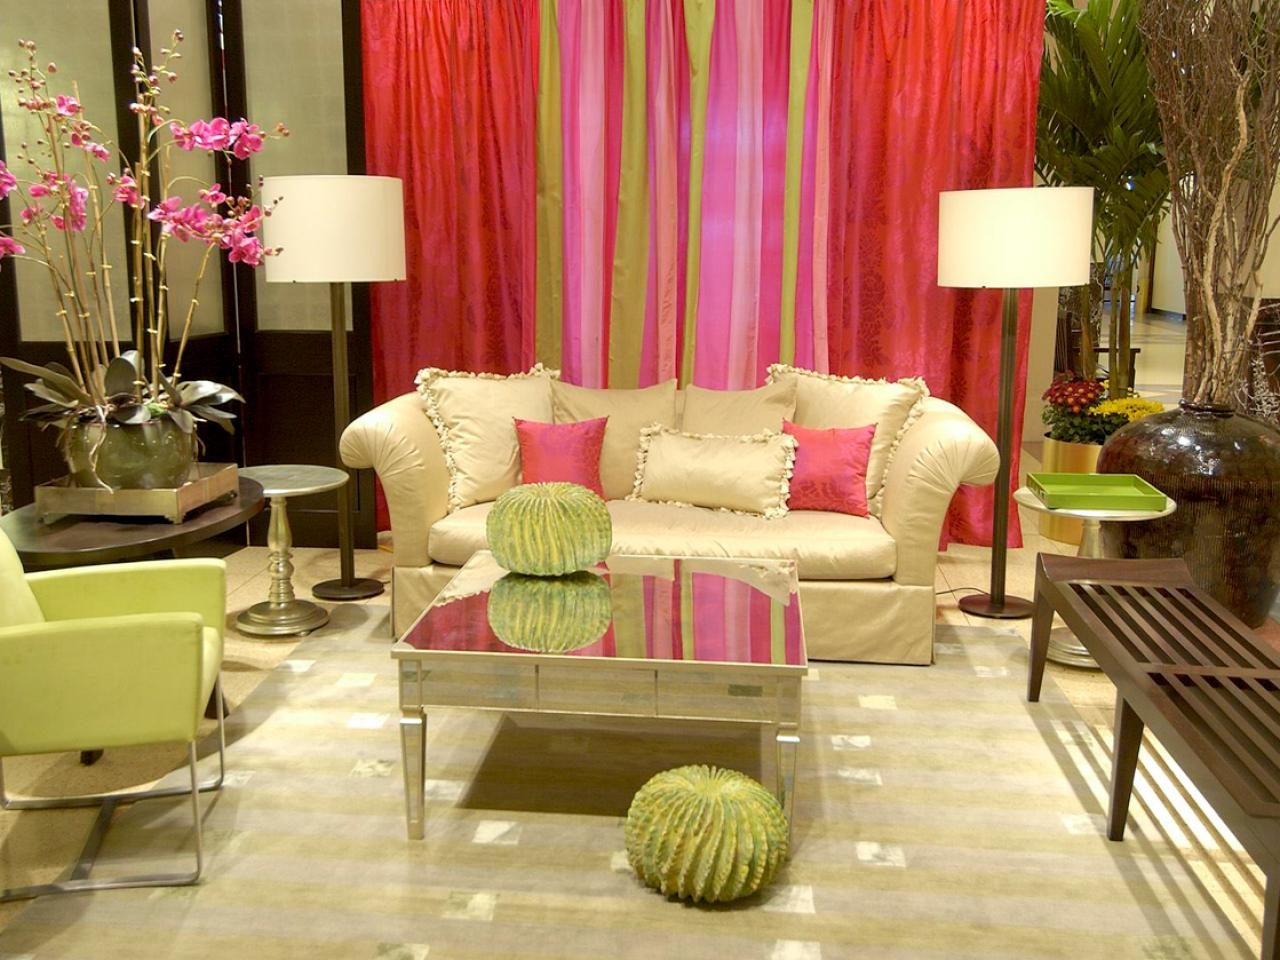 red and green living room. 10 fabulous colors to paint the walls of your small living Red and green room ideas 409921  es youland info